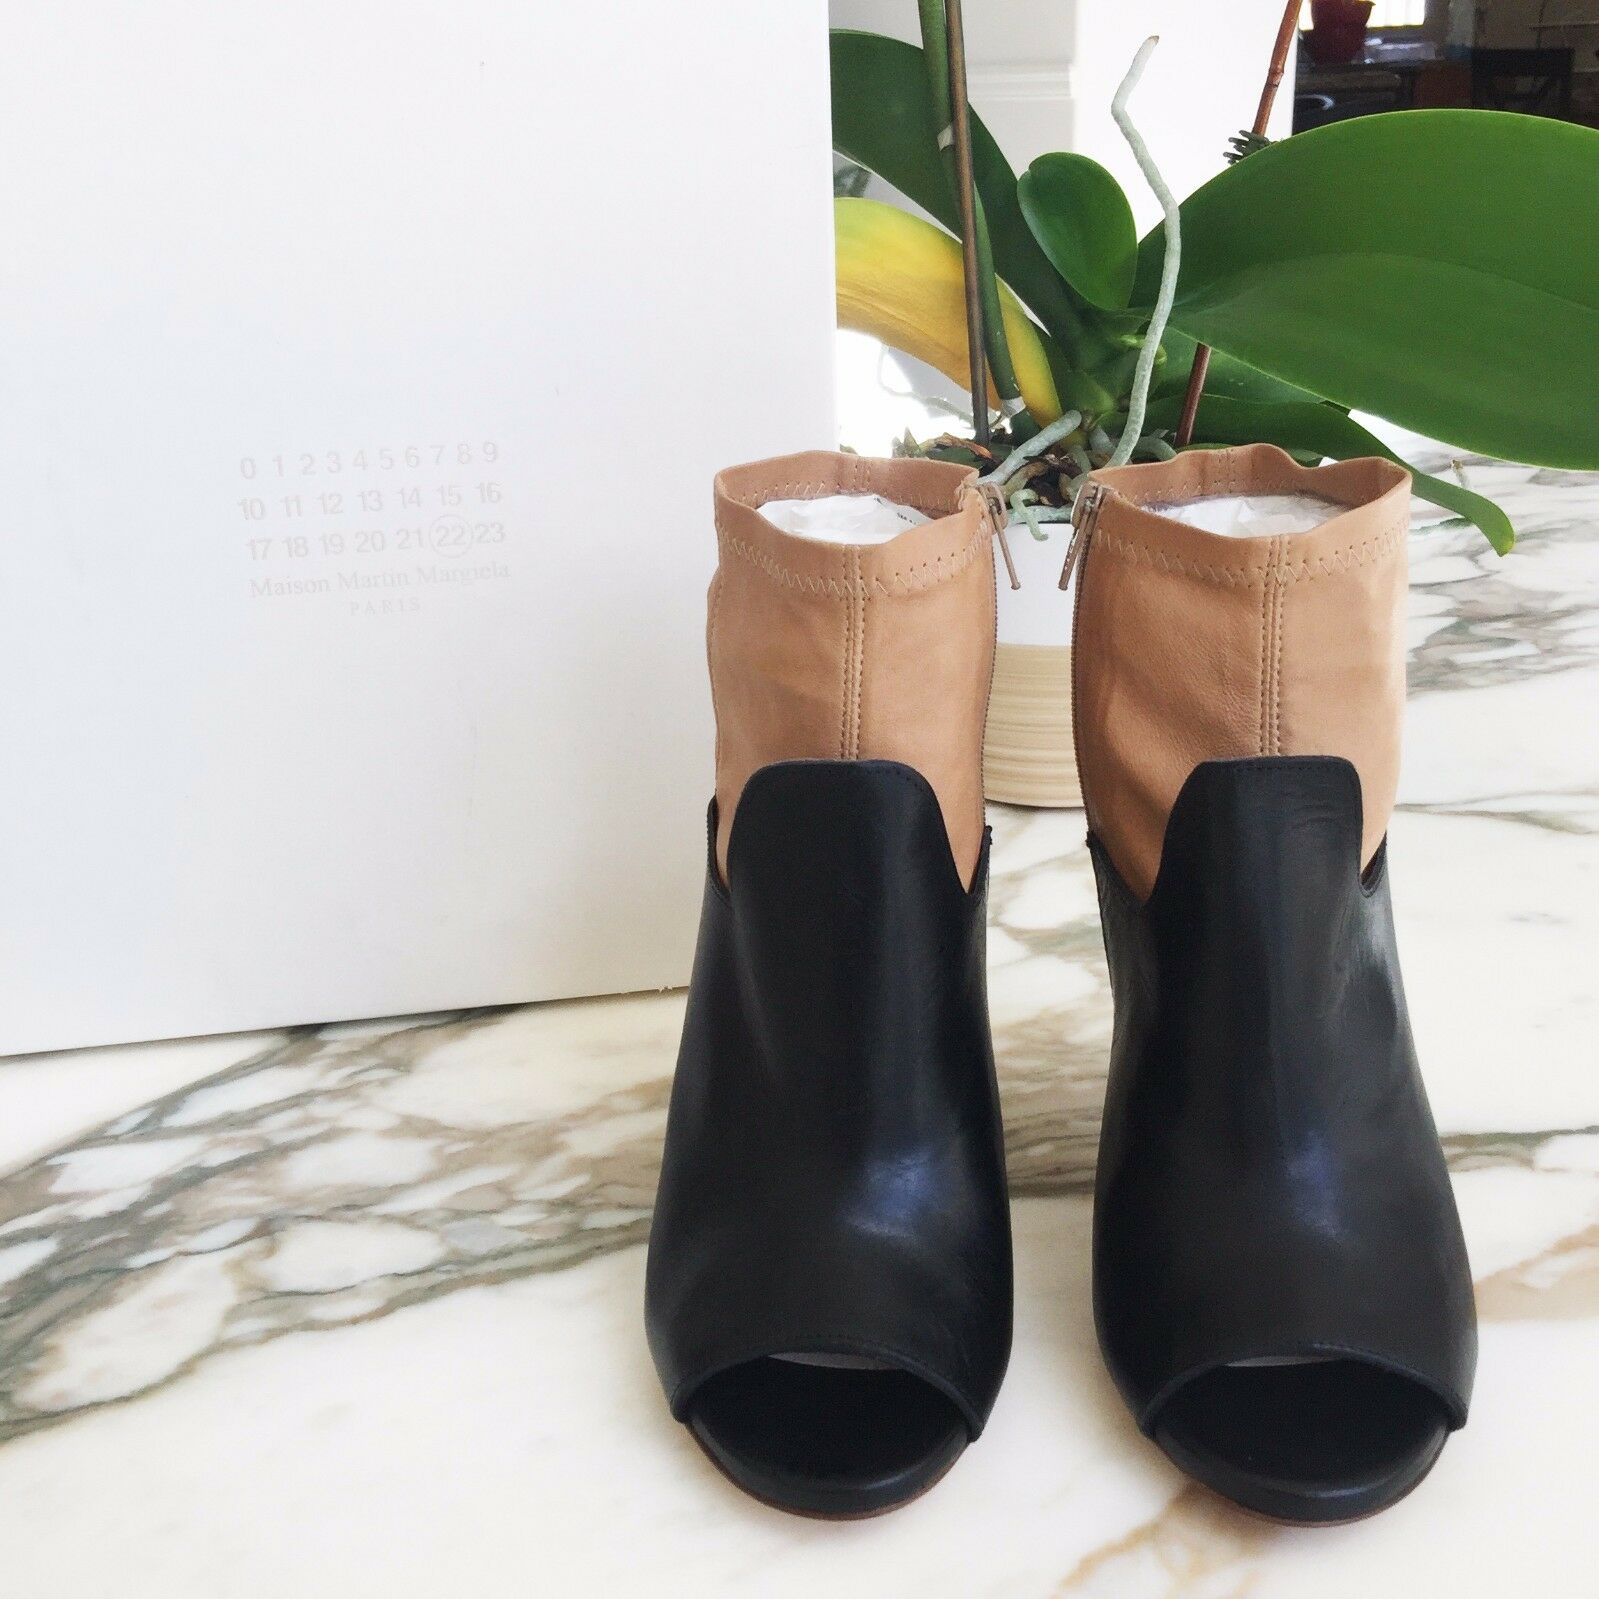 New MAISON MARTIN MARGIELA 2 Tone Leather Open Toe Boots High Heeled Ankle Boots